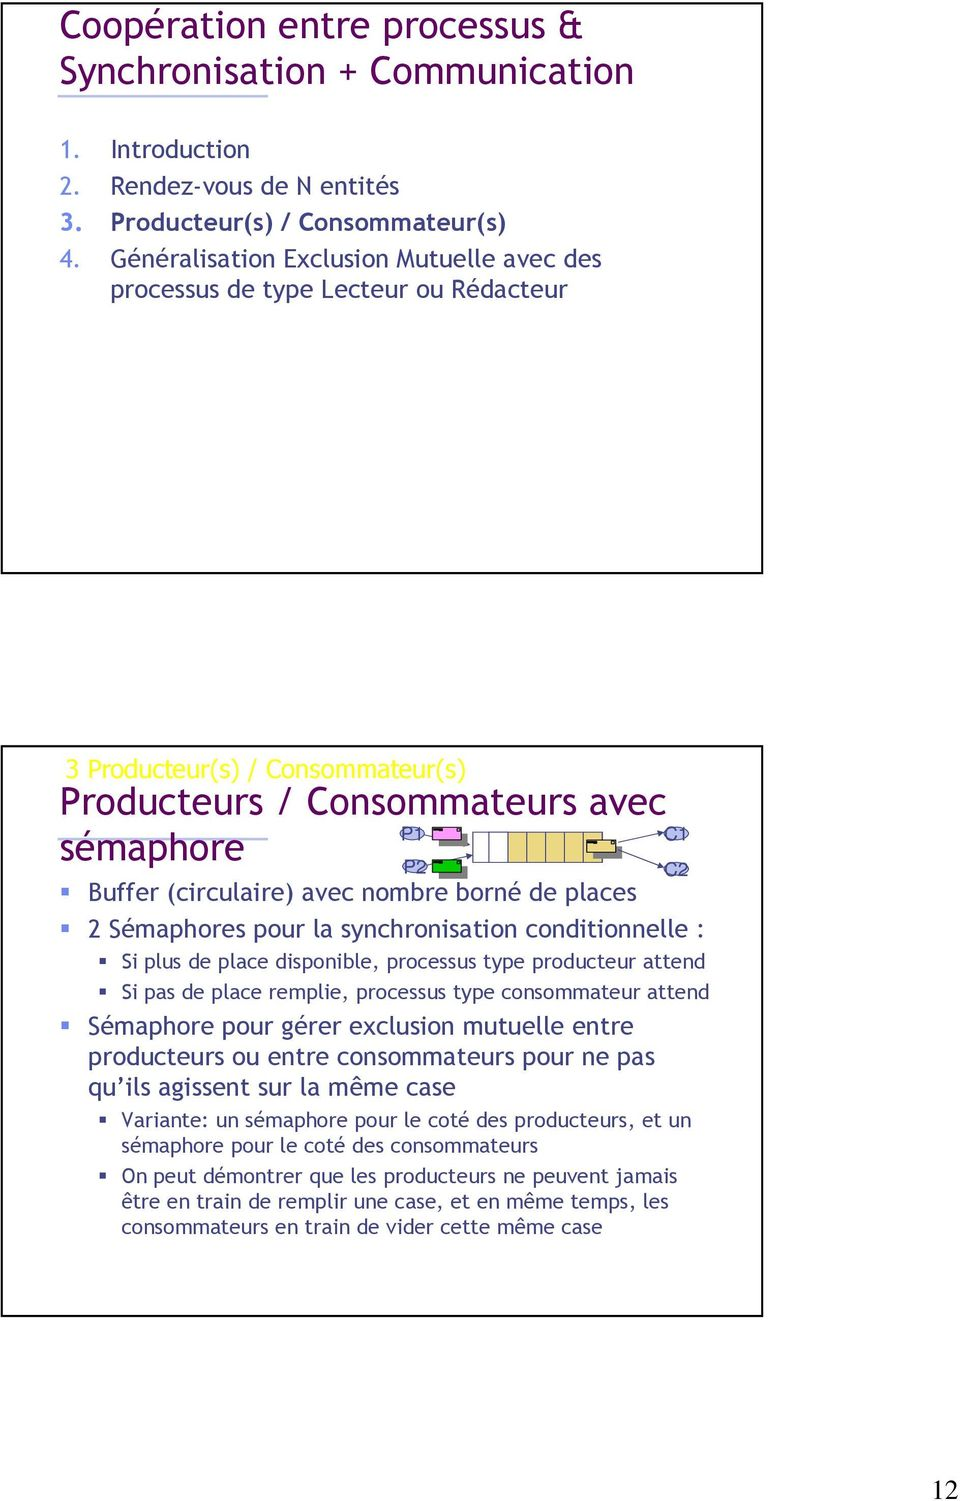 de places 2 Sémaphores pour la synchronisation conditionnelle : Si plus de place disponible, processus type producteur attend Si pas de place remplie, processus type consommateur attend Sémaphore